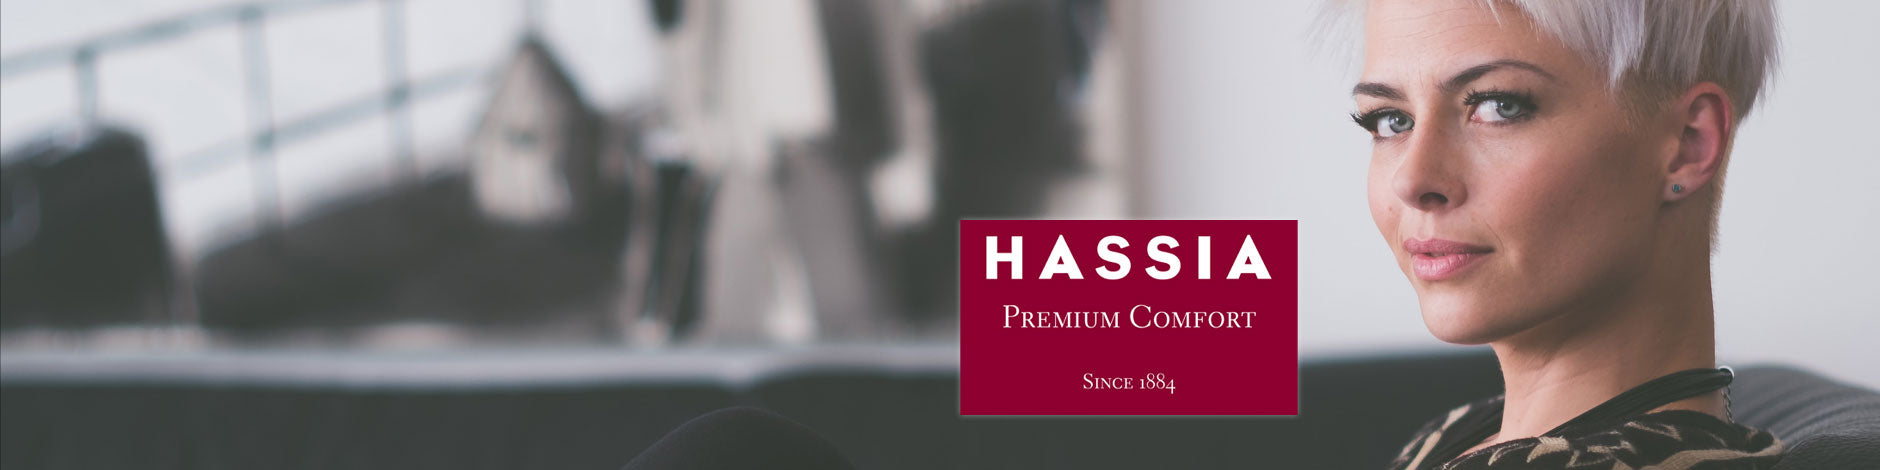 tony shoes hassia shoes, comfort shoes hassia